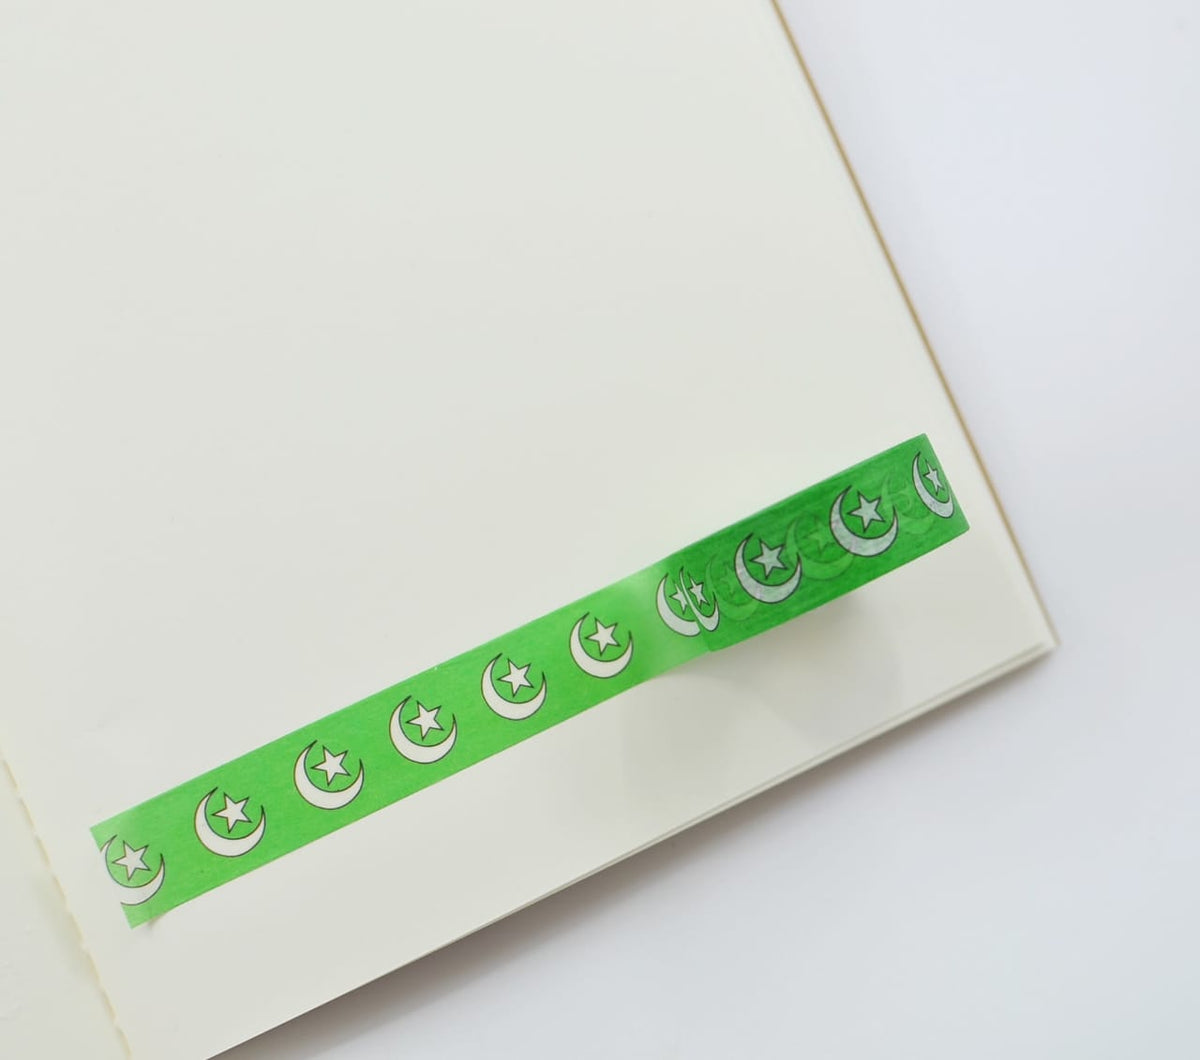 Pakistan Washi Tape